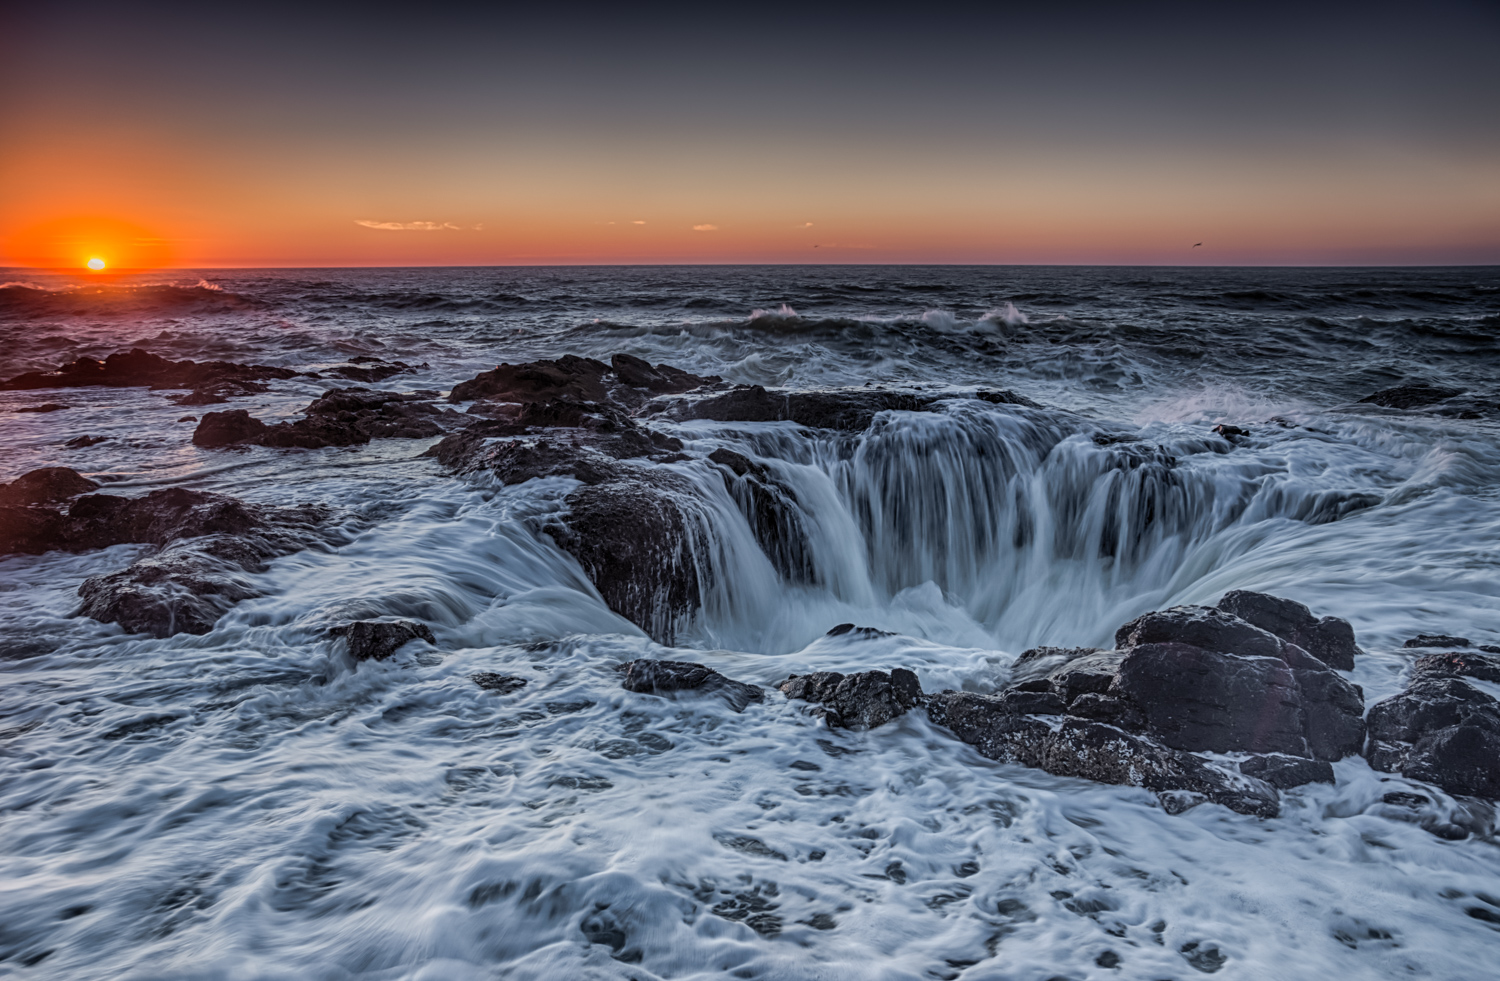 2015-10-05 Oregon Yachats Thor's Well 53a